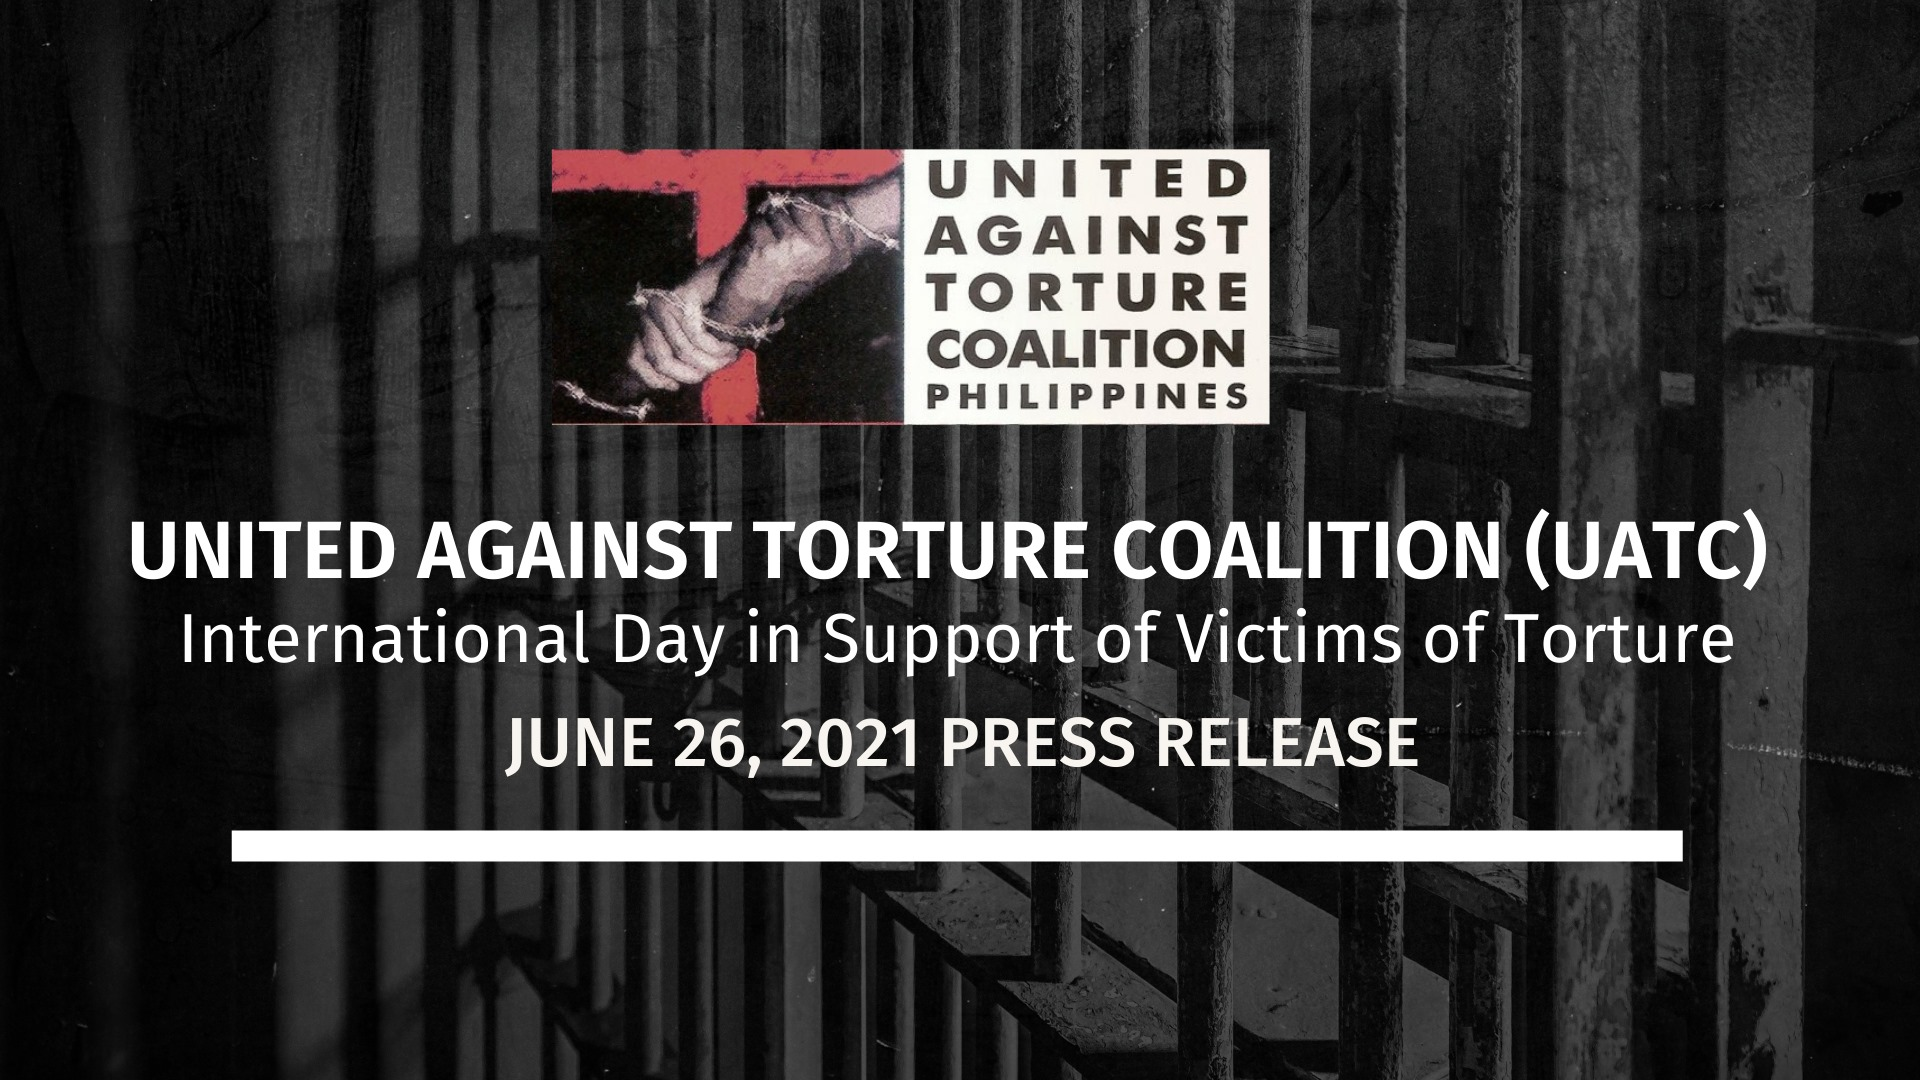 """""""Philippine government must guarantee health care of persons deprived of liberty and  decongest  prison population to reduce the risk of COVID 19 spread"""", UATC Press Release on International Day in Support of Victims of Torture 2021"""